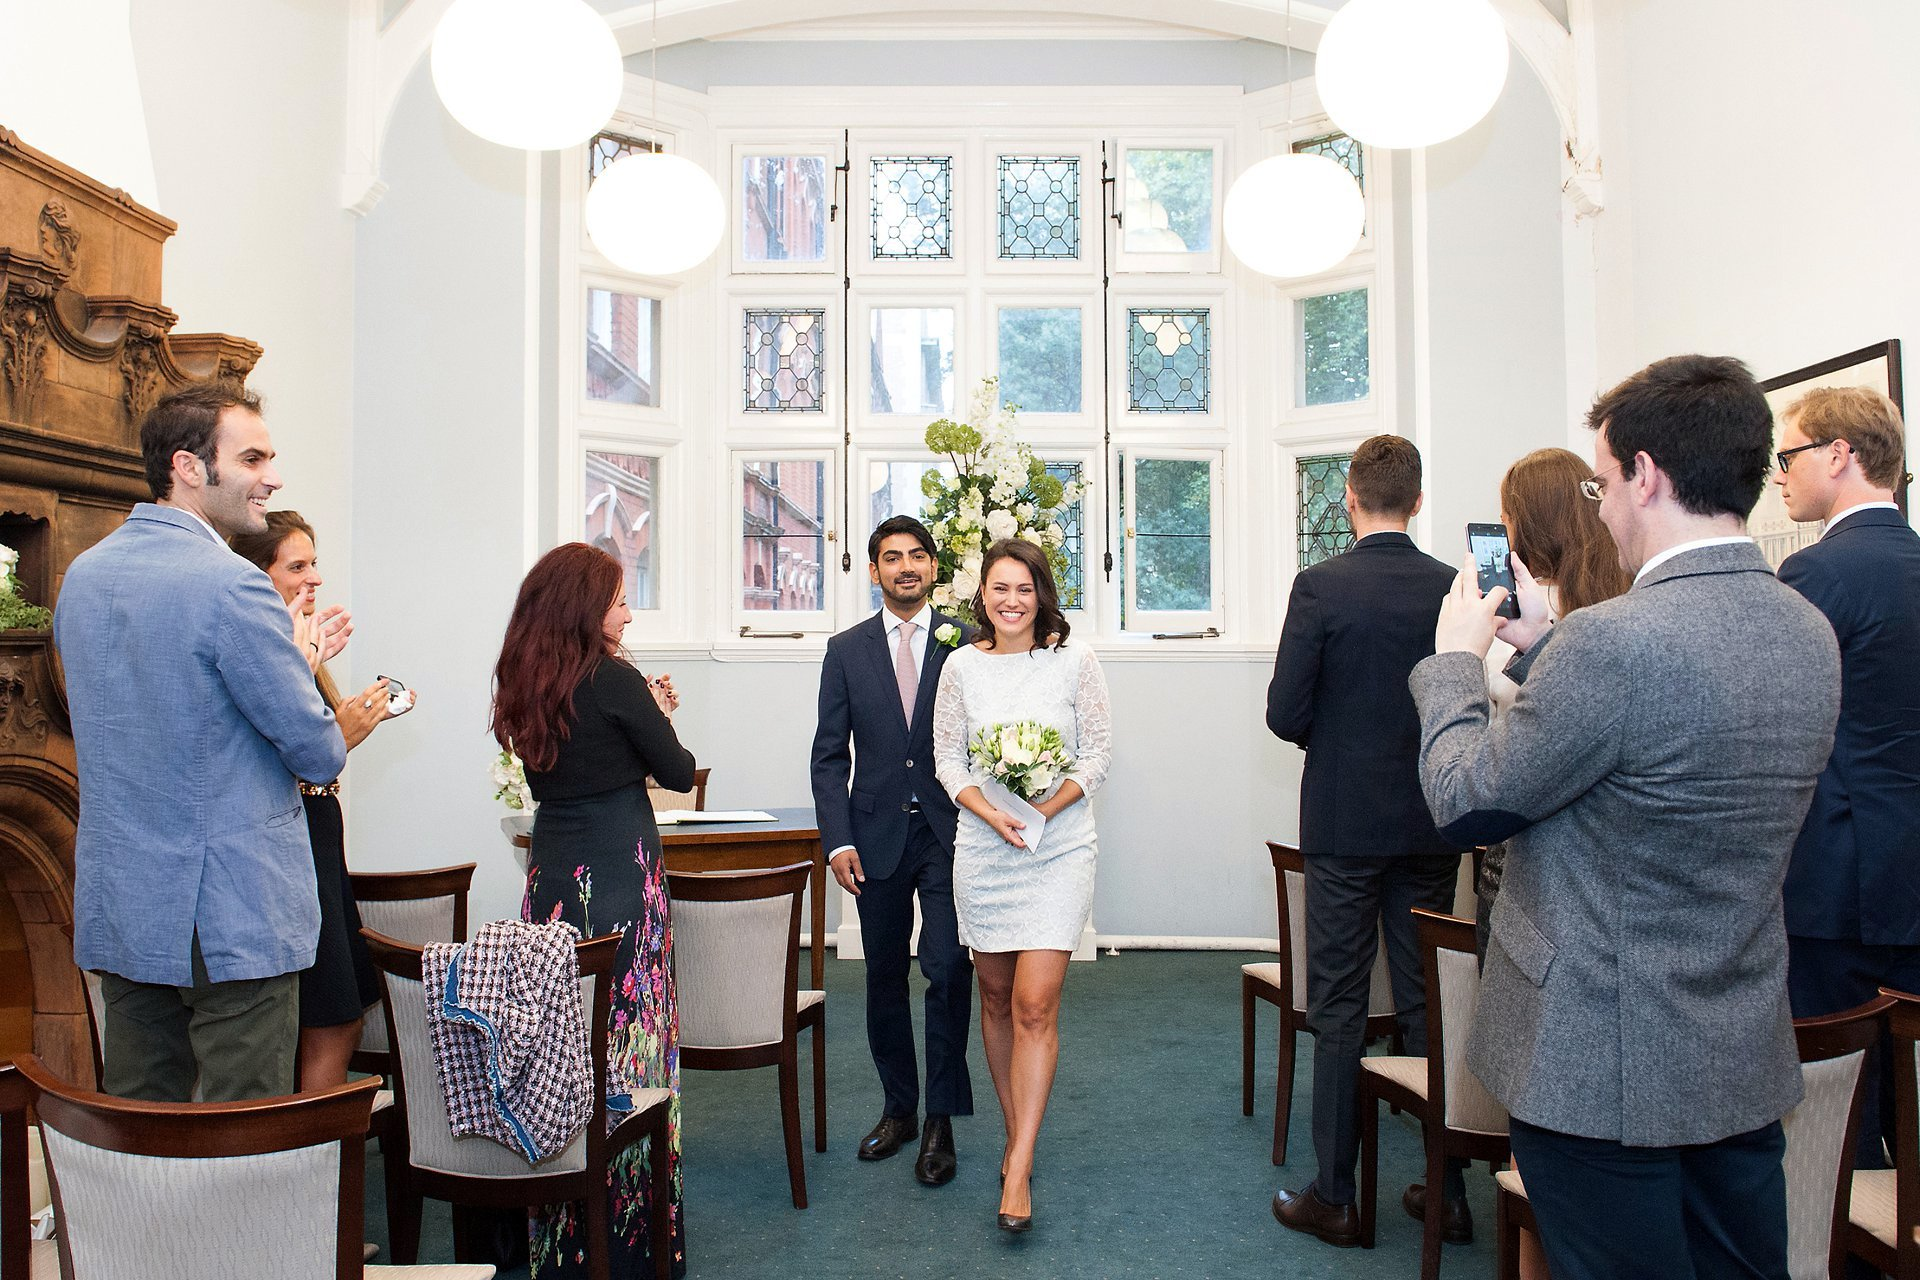 Bride and groom leaving the Marylebone Room inside Mayfair Library as huband and wife